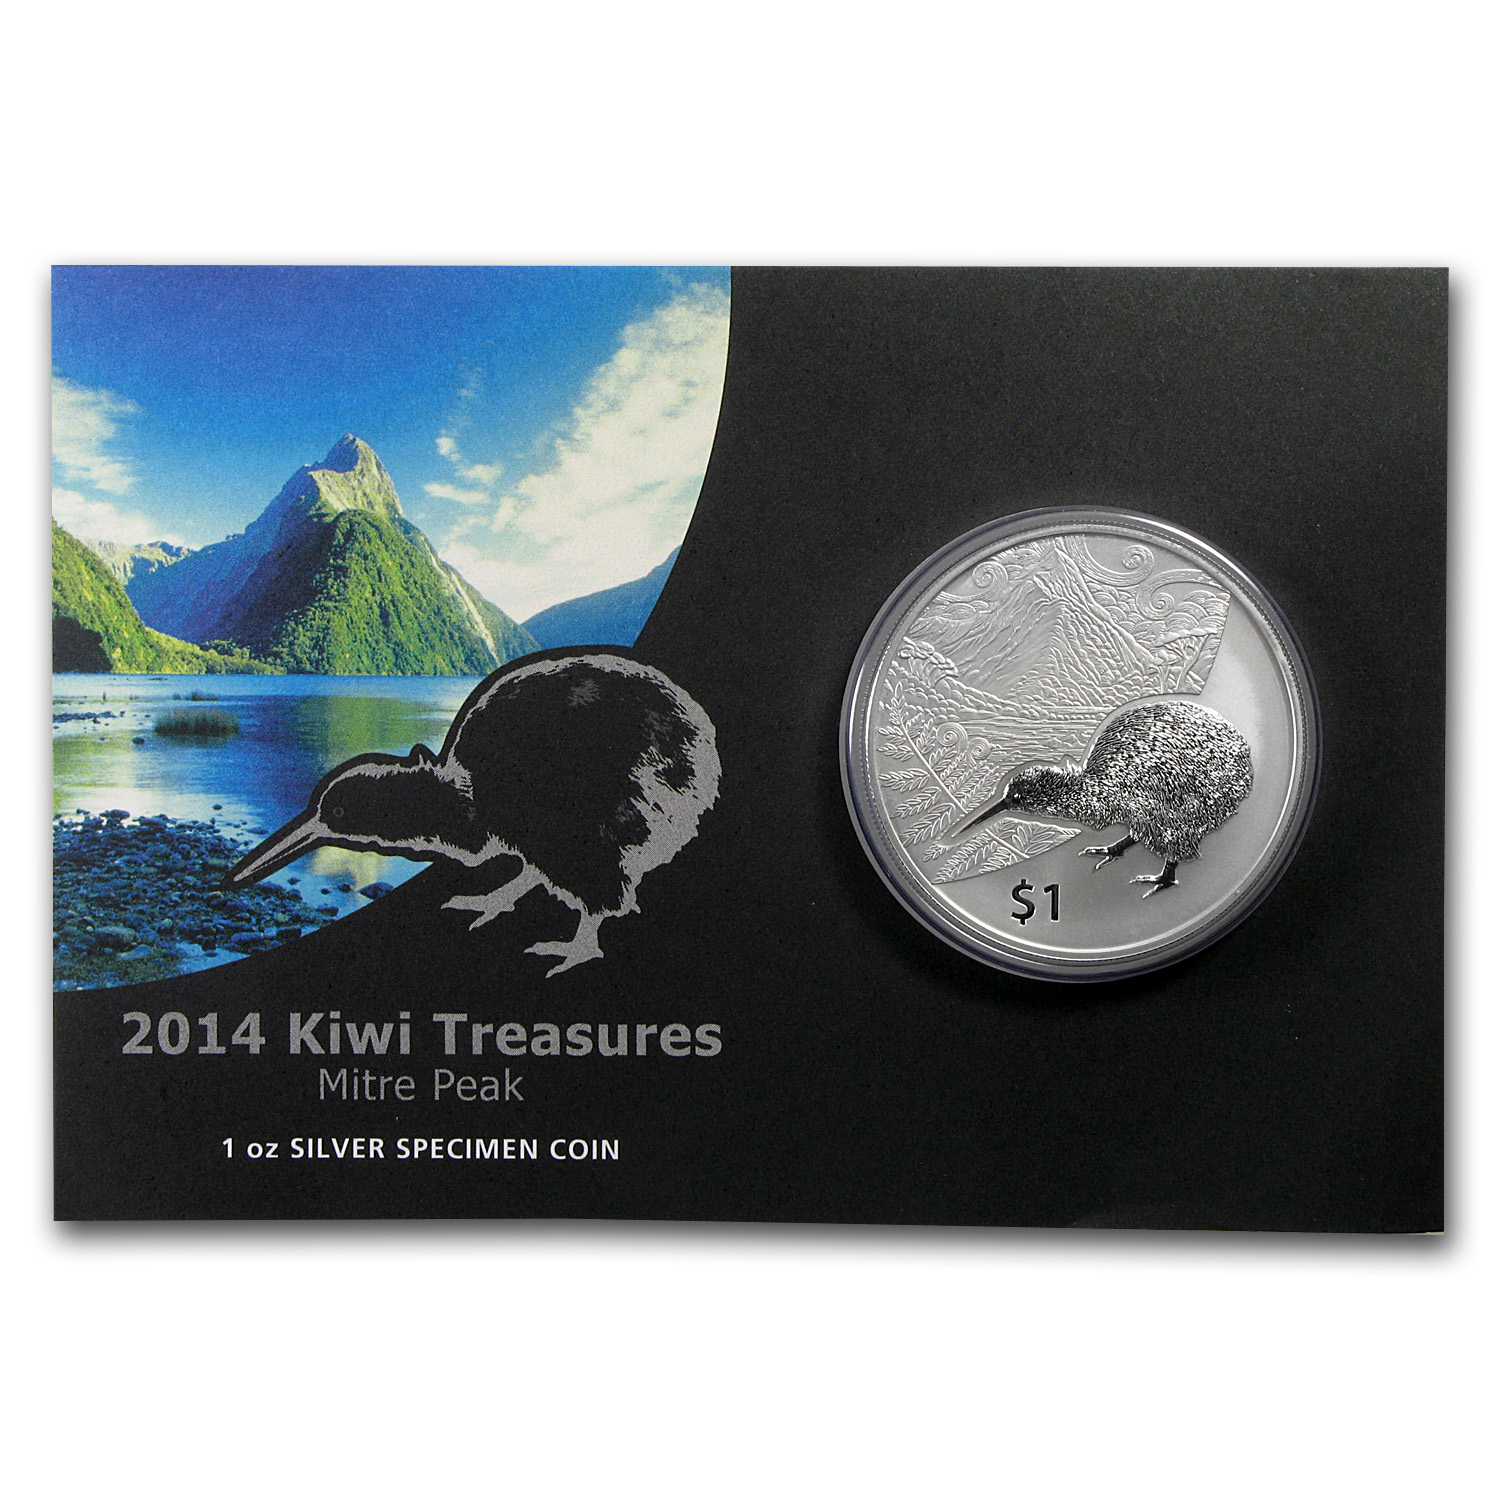 2014 New Zealand 1 oz Silver Treasures $1 Kiwi Specimen